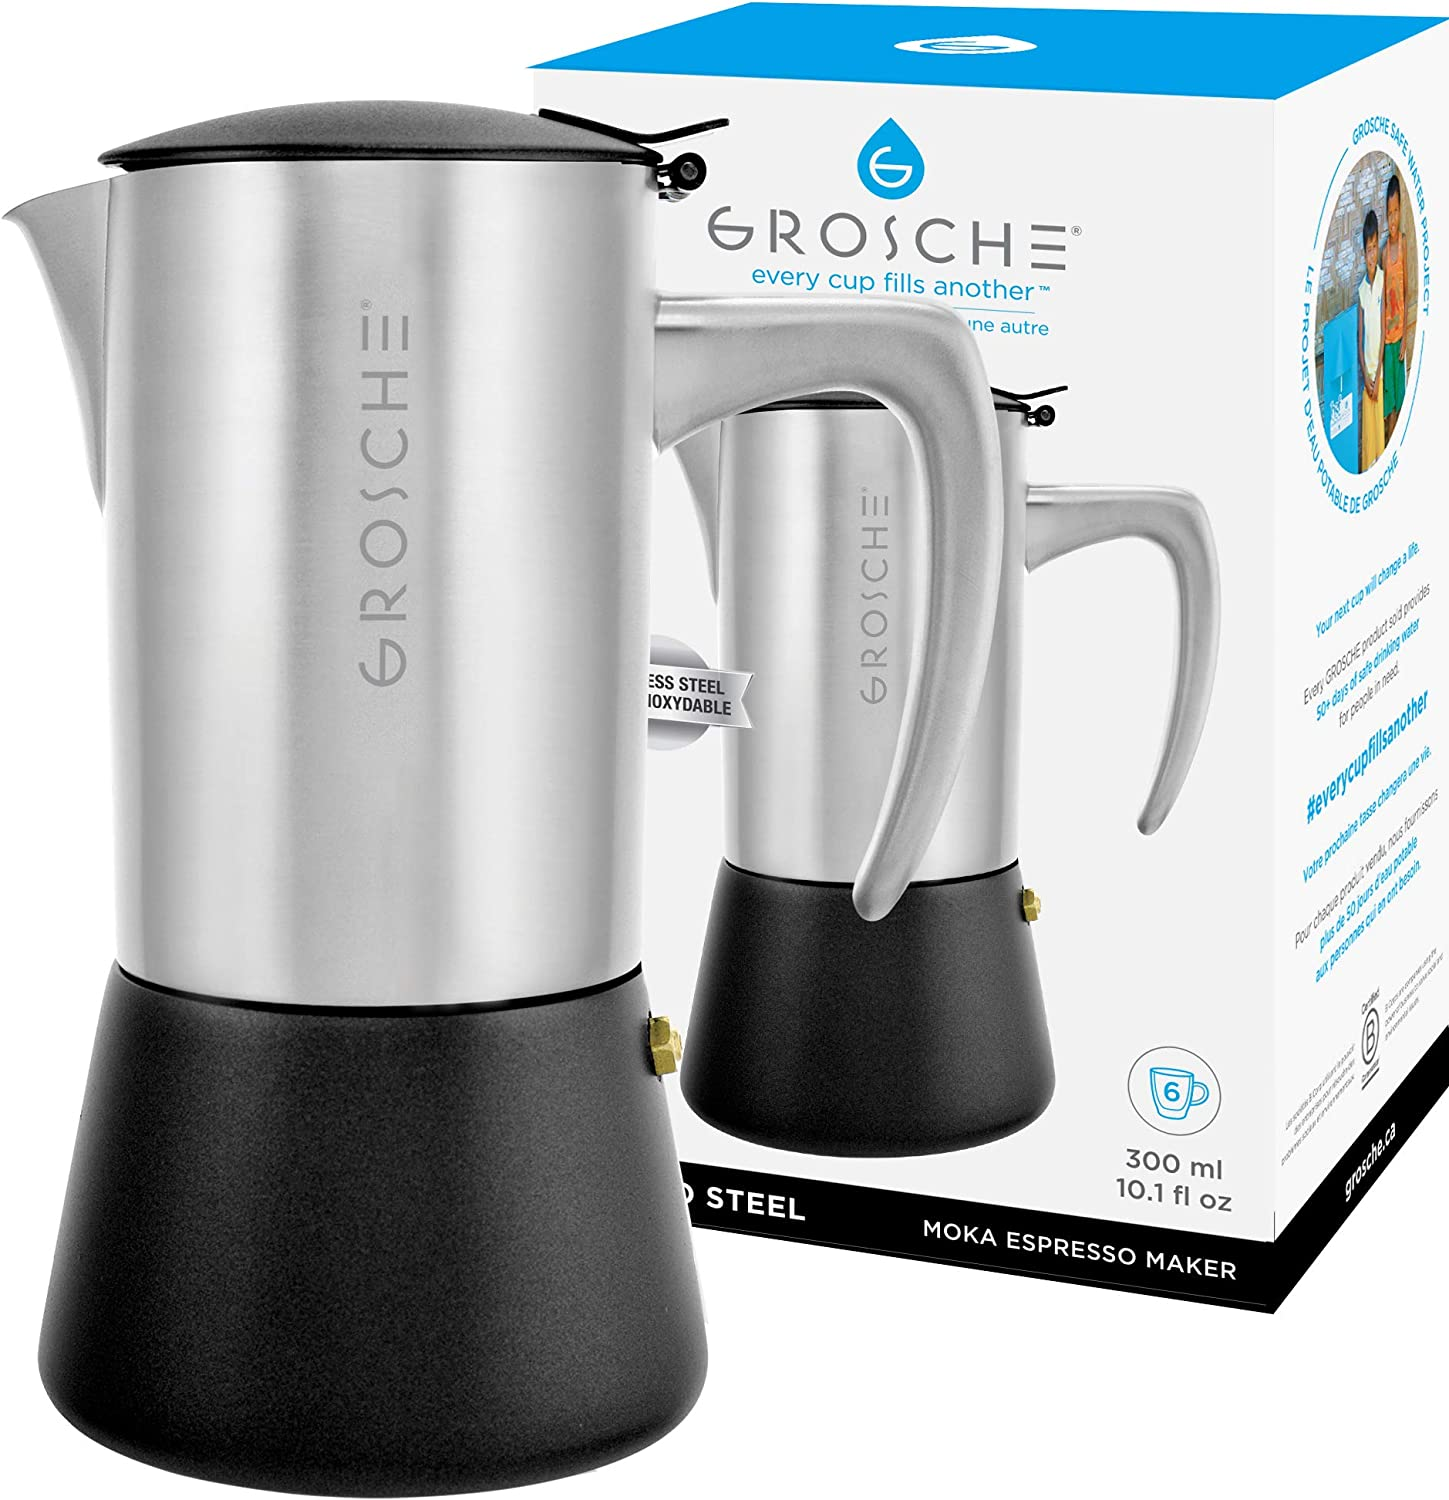 GROSCHE Milano Steel 6 espresso cup Brushed Stainless Steel Stovetop Espresso Maker Moka pot Cuban Coffee maker Italian Espresso Greca coffee maker for Induction gas or electric stoves